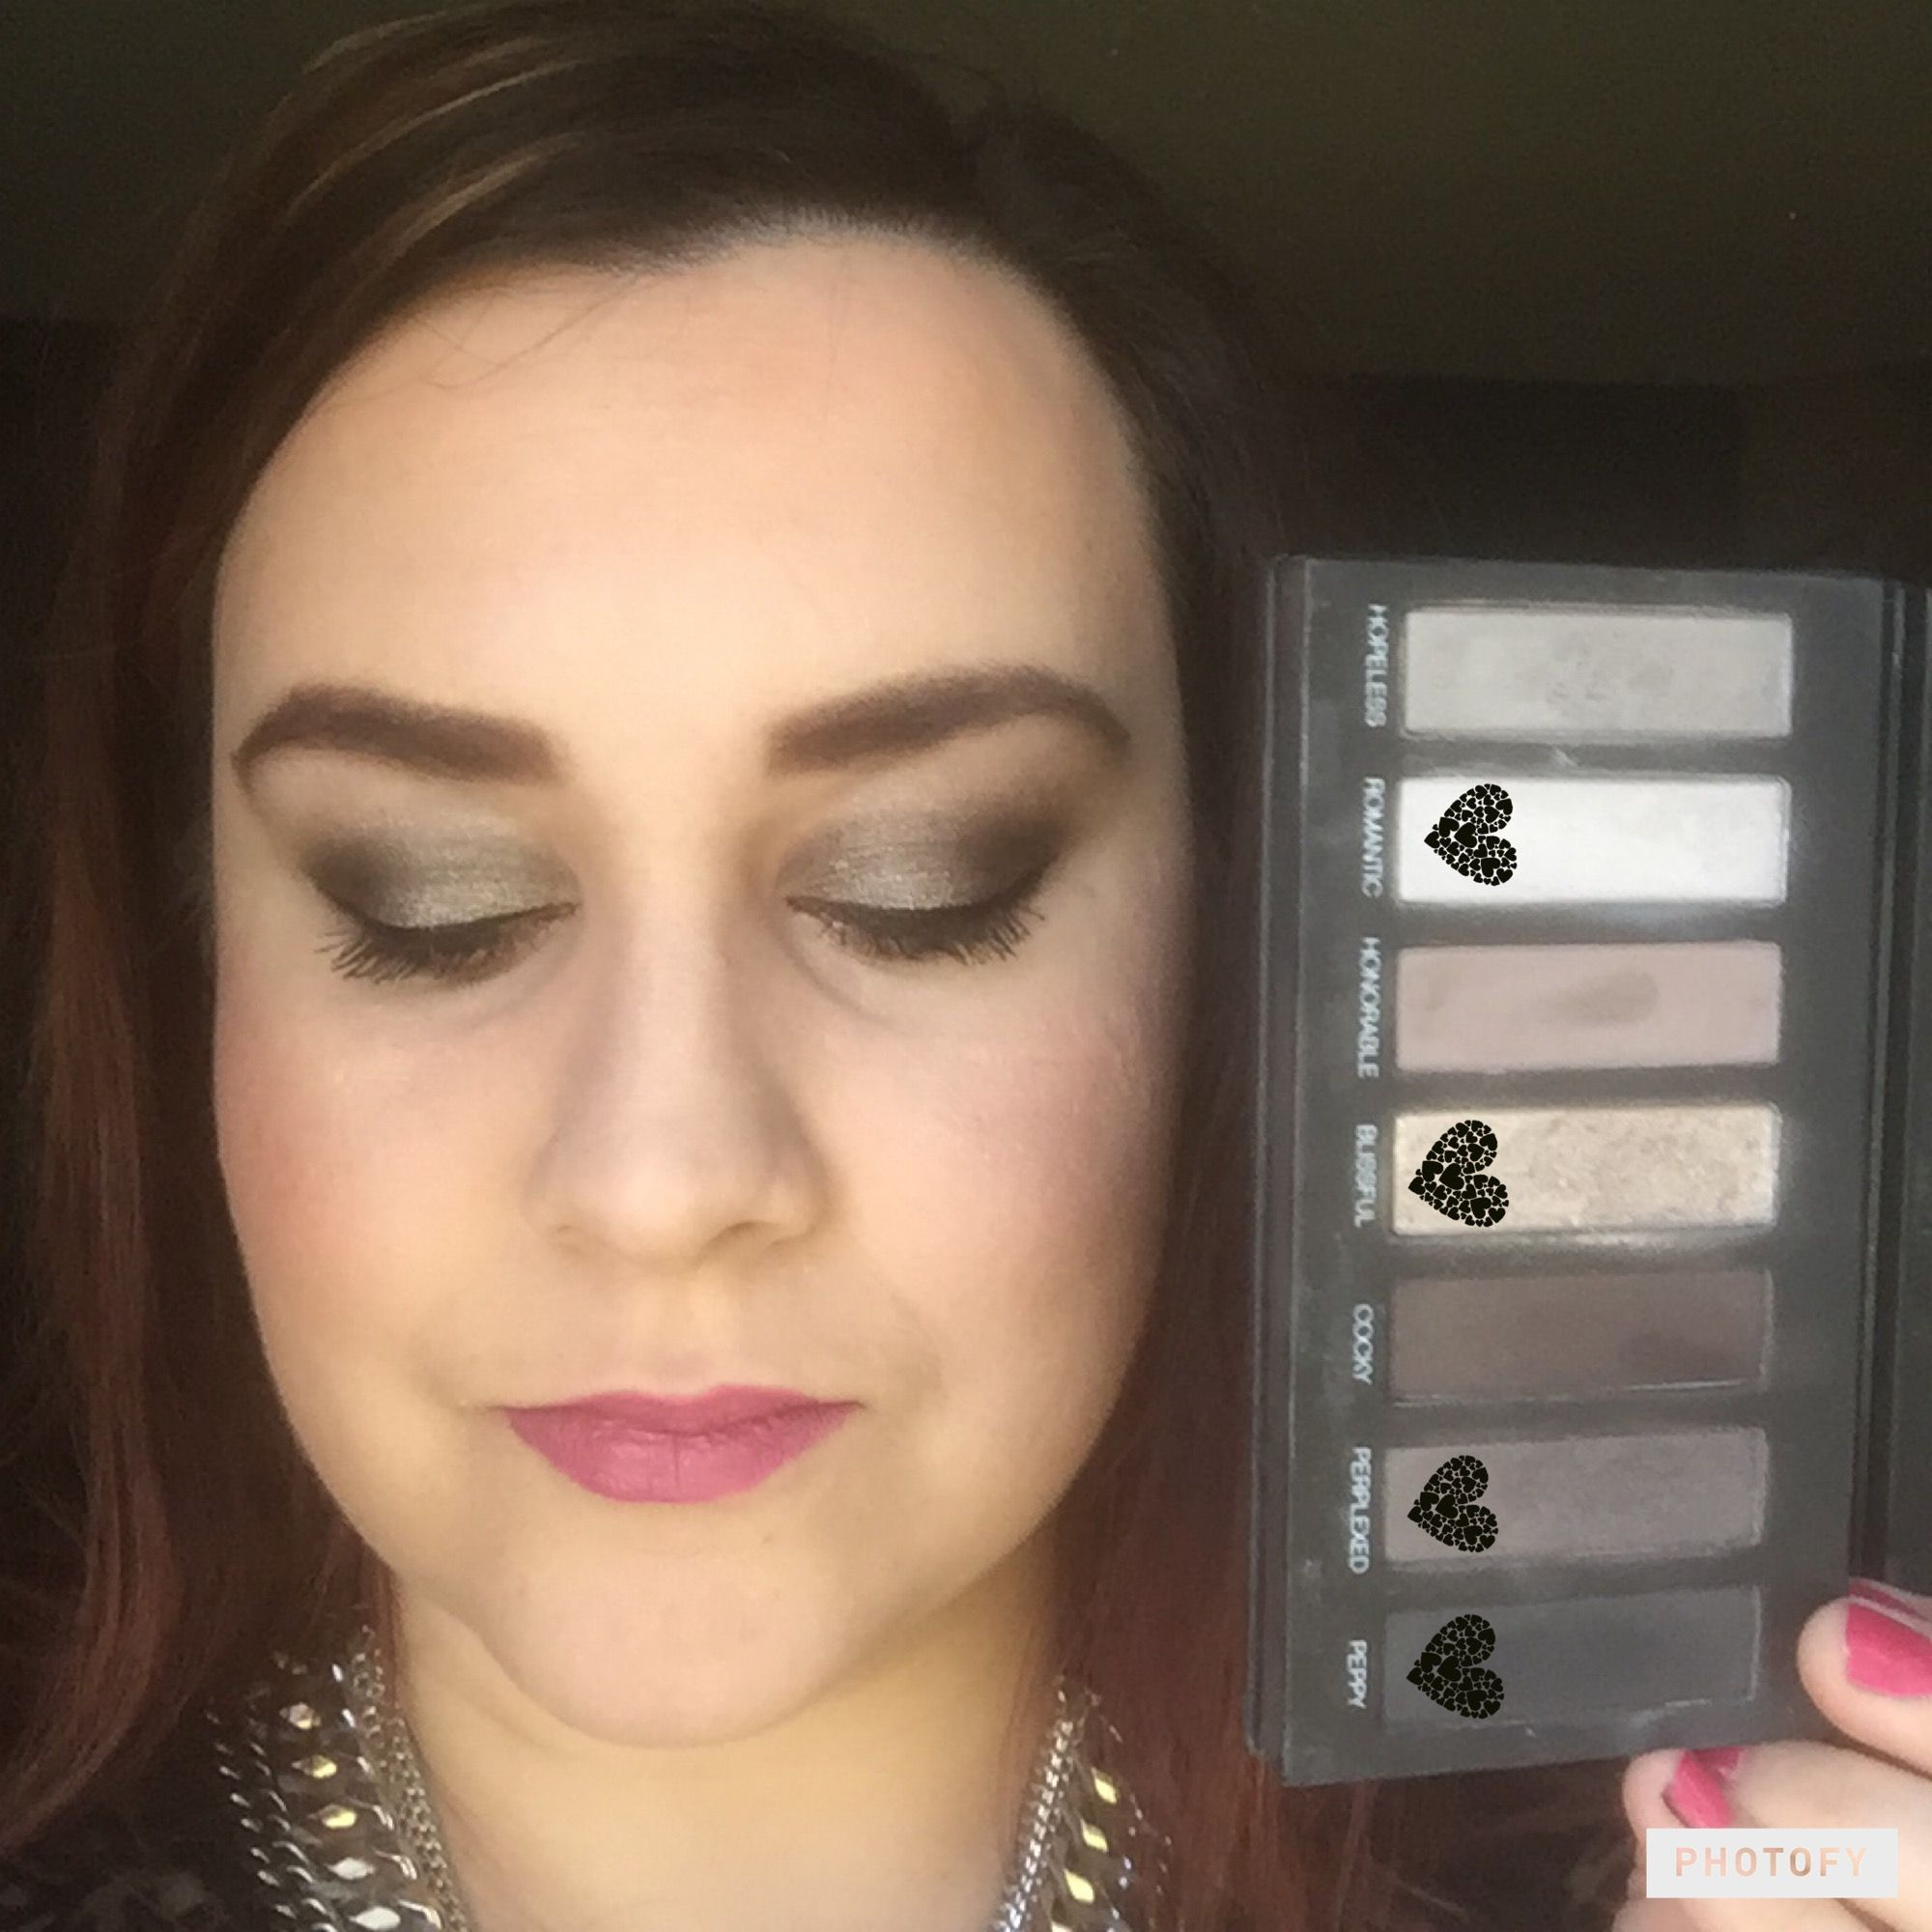 Younique Moodstruck Addictions Palette #2  Lips Splash Liquid matte lipstick in sentimental!